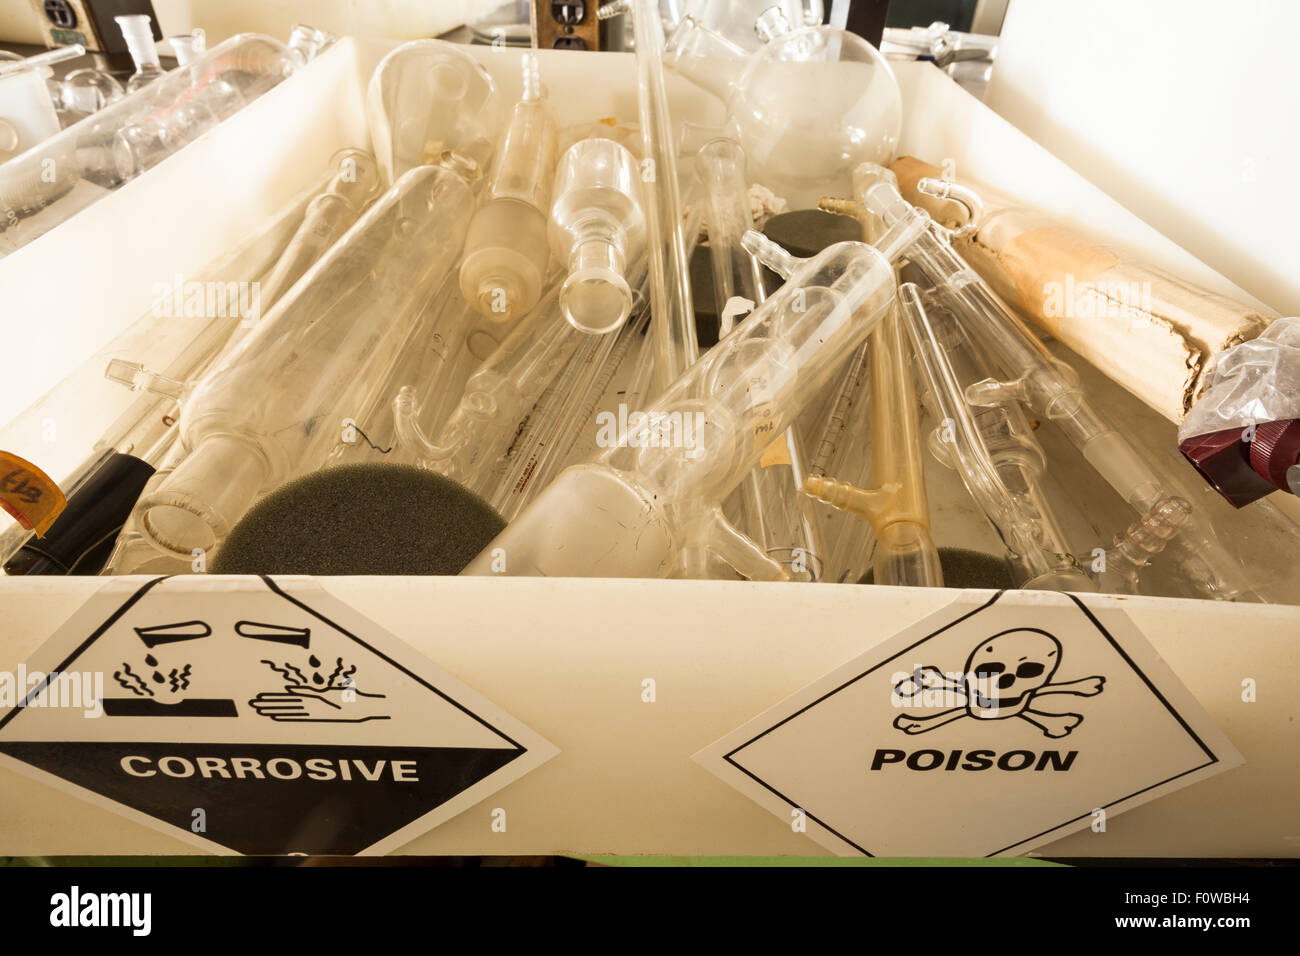 A box of chemistry glassware, with corrosive and poison stickers. - Stock Image